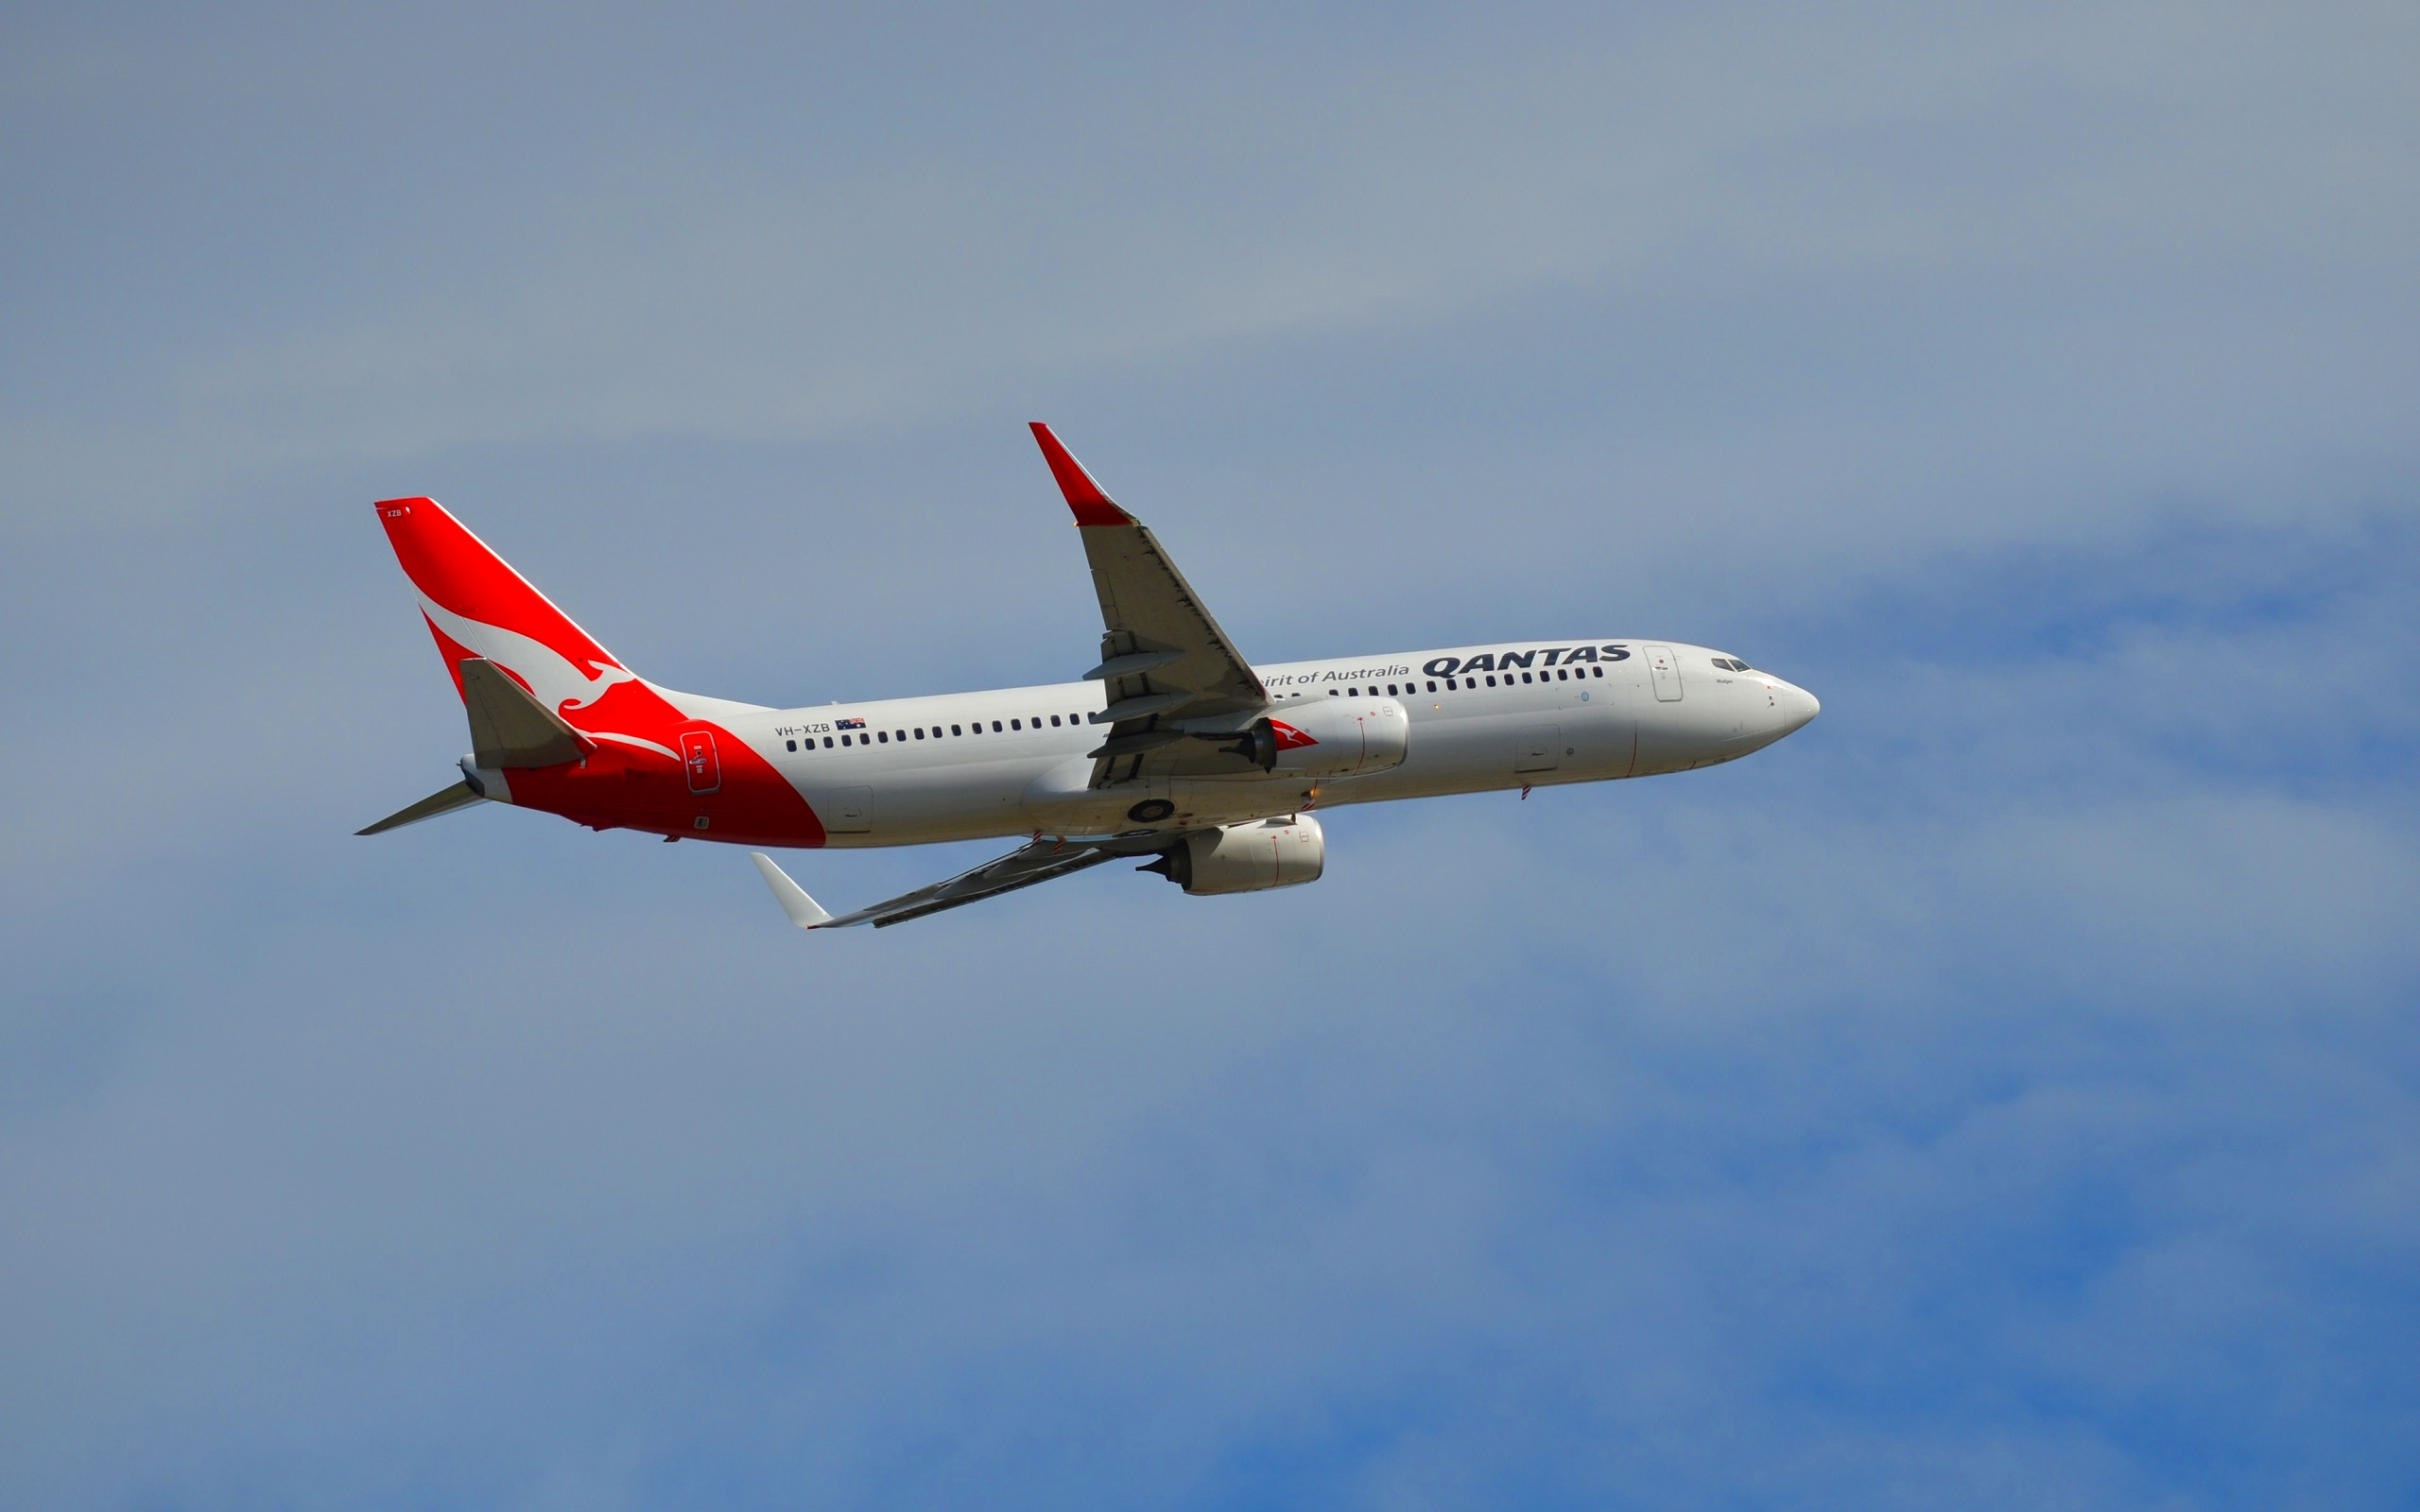 qantas background Background qantas is one of the world's largest and most recognised airline services and carries approximately 25,000,000 passengers worldwide per year as a sustainability partner to.